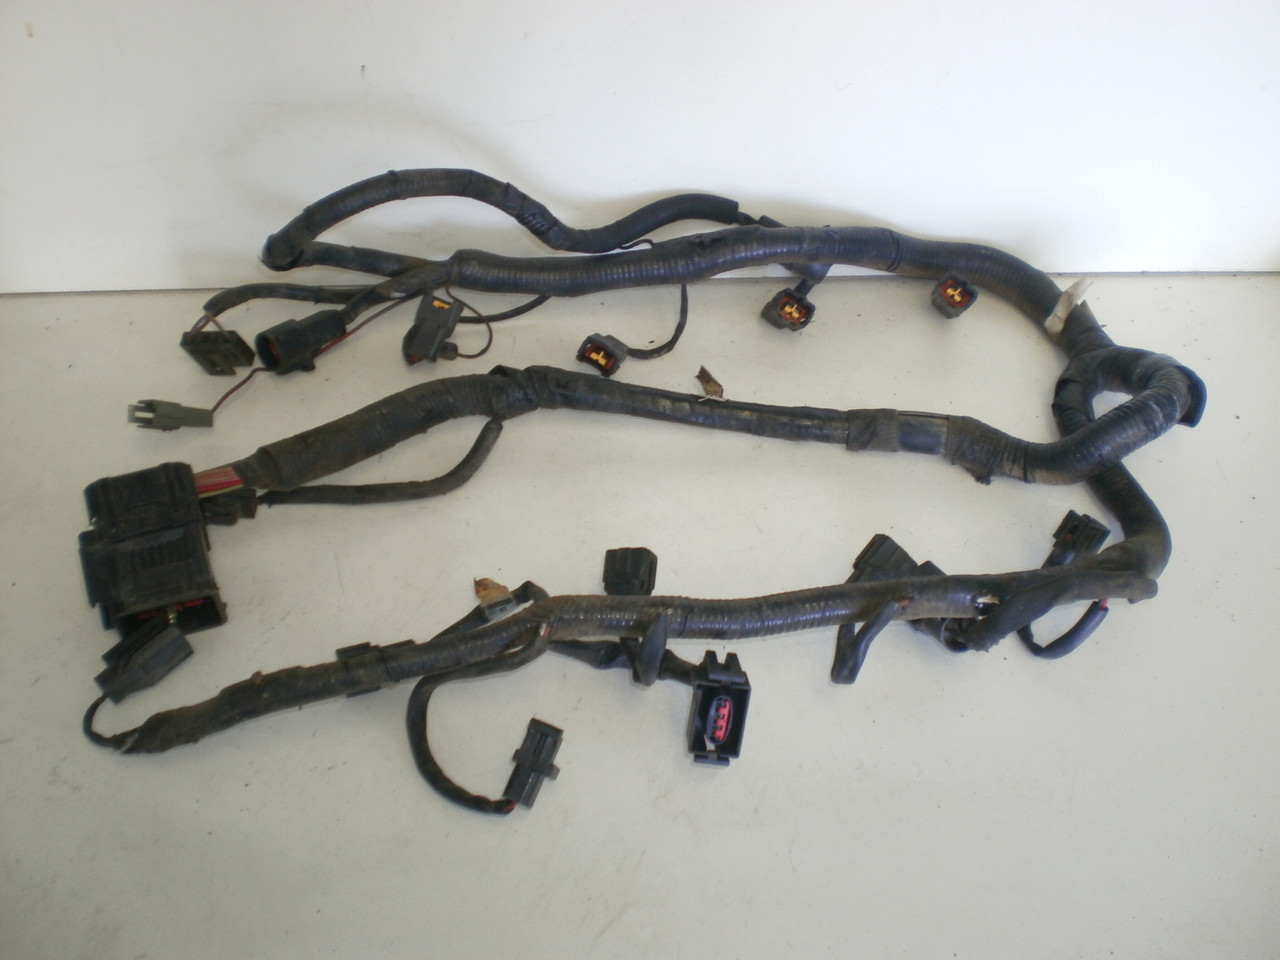 1995 ford mustang wiring harness wiring diagram 1994 1995 ford mustang 5 0 v8 302 engine [ 1280 x 960 Pixel ]